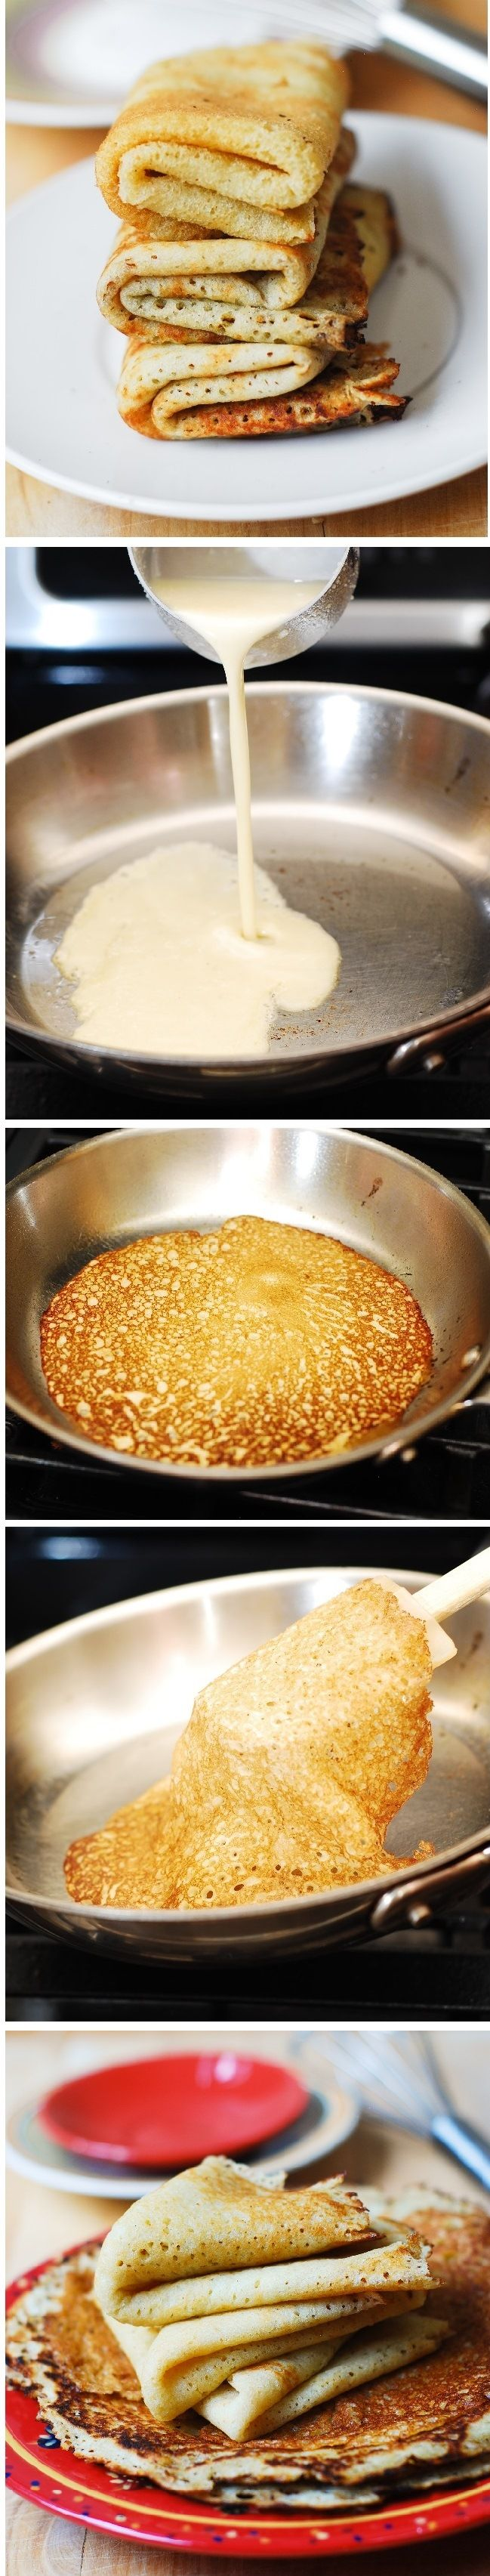 Step-by-step photos and instructions - How to make gluten free crepes from scratch using your favorite gluten free flour blend (homemade or store-bought) or gluten free waffle/pancake mix. They taste and look just like regular crepes! Dairy free, wheat free and gum free recipe!